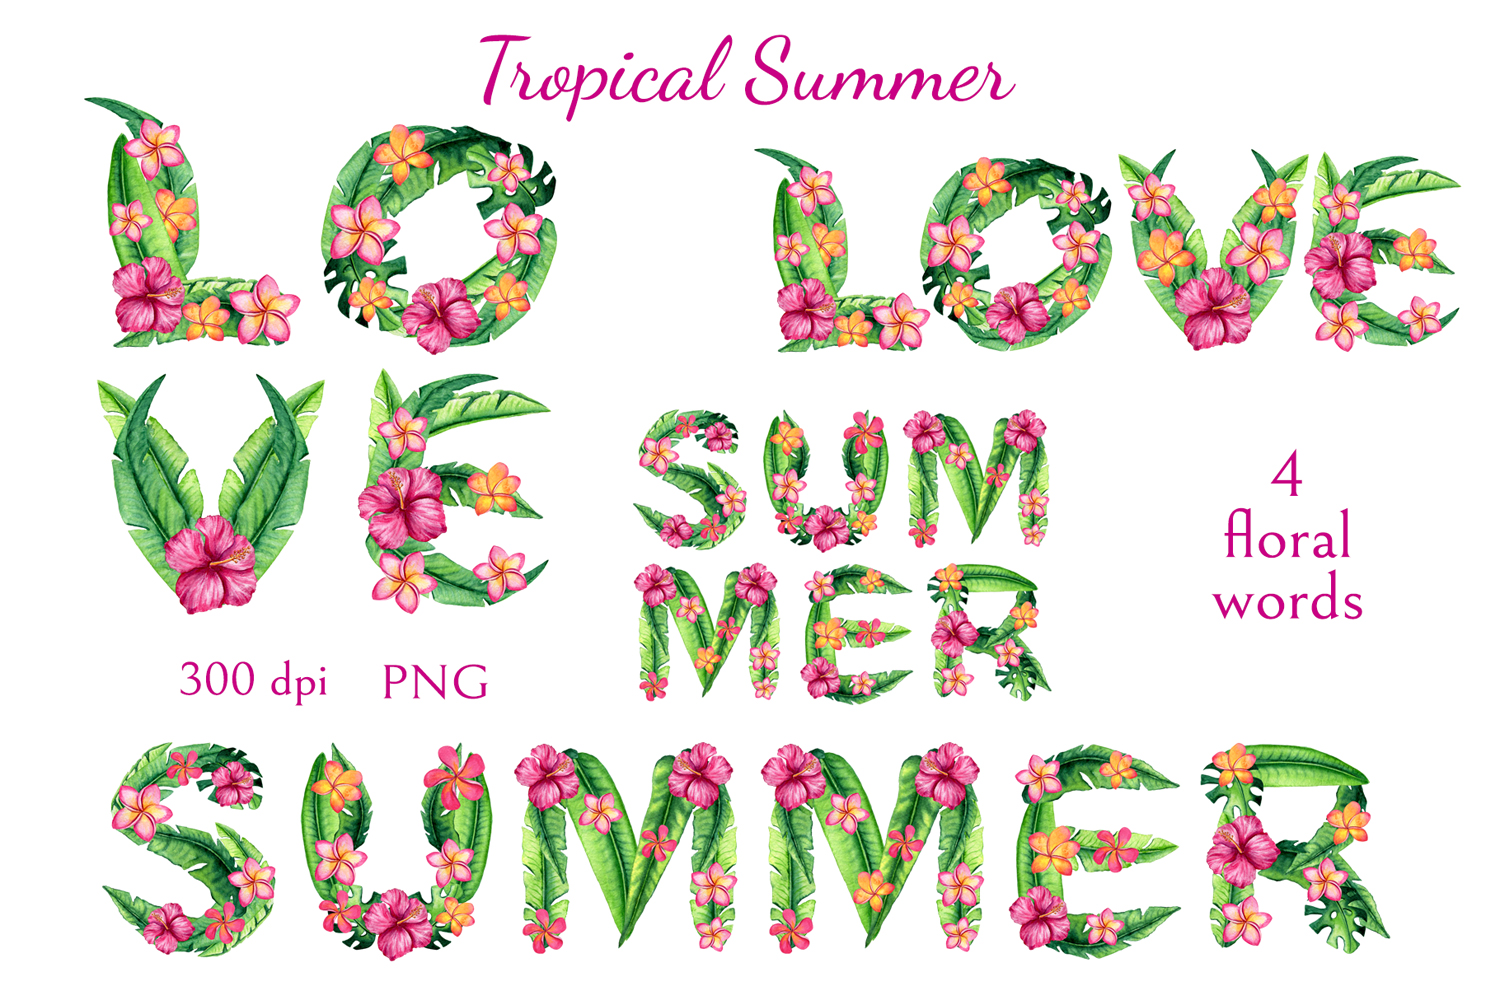 Tropical Summer example image 10